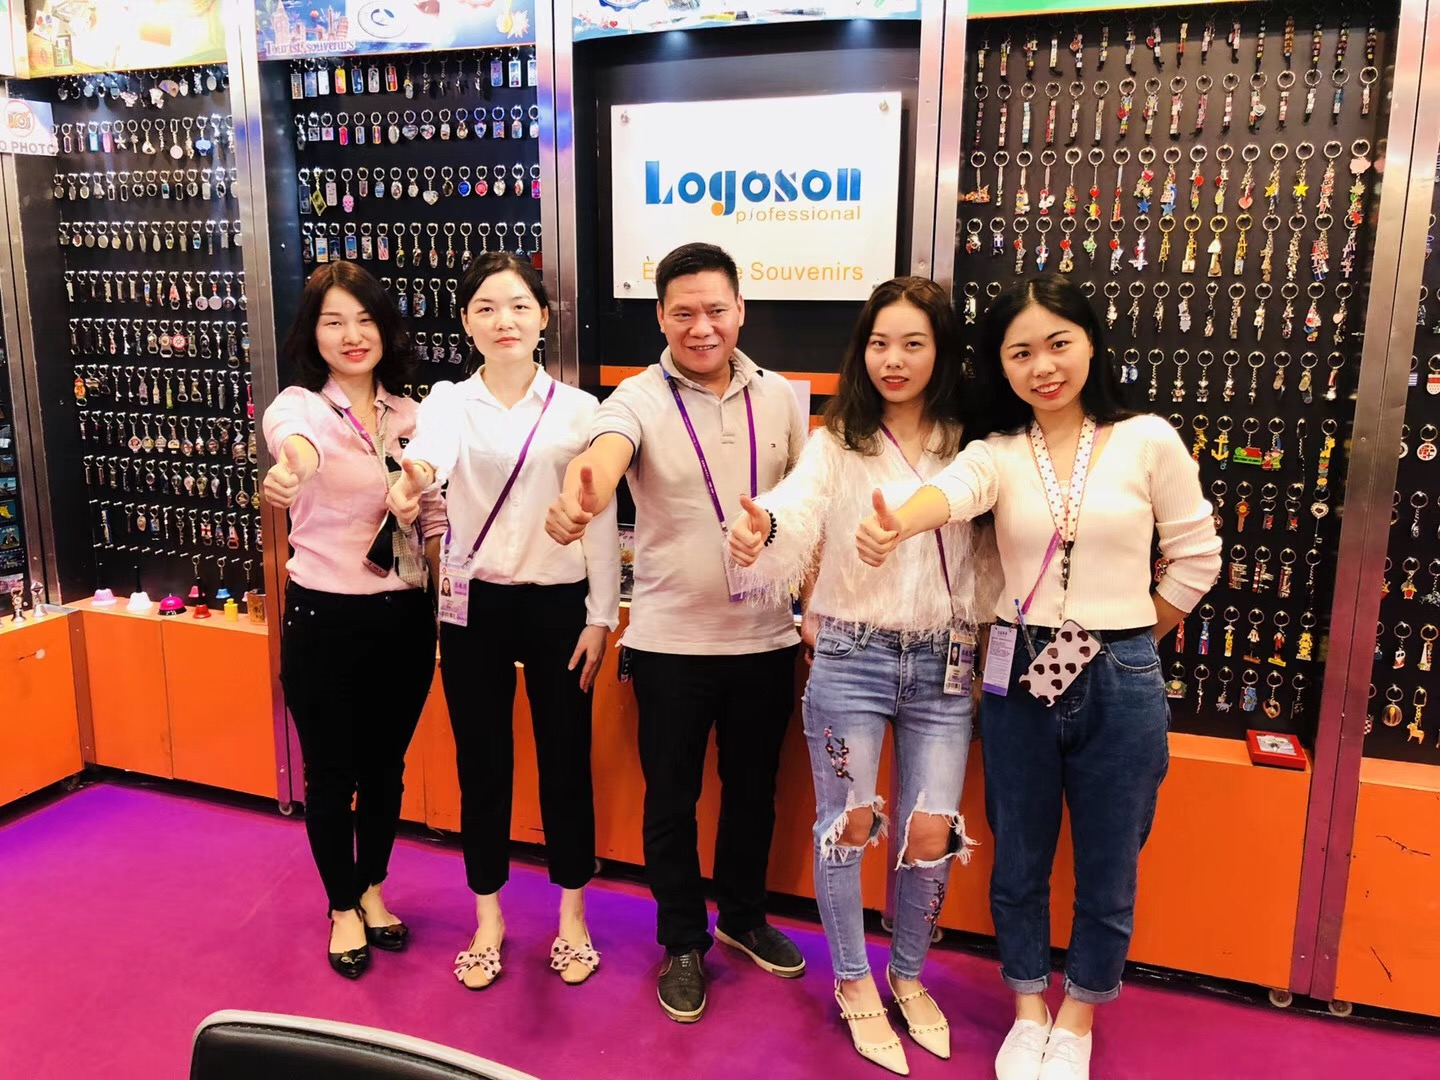 canton fair photo